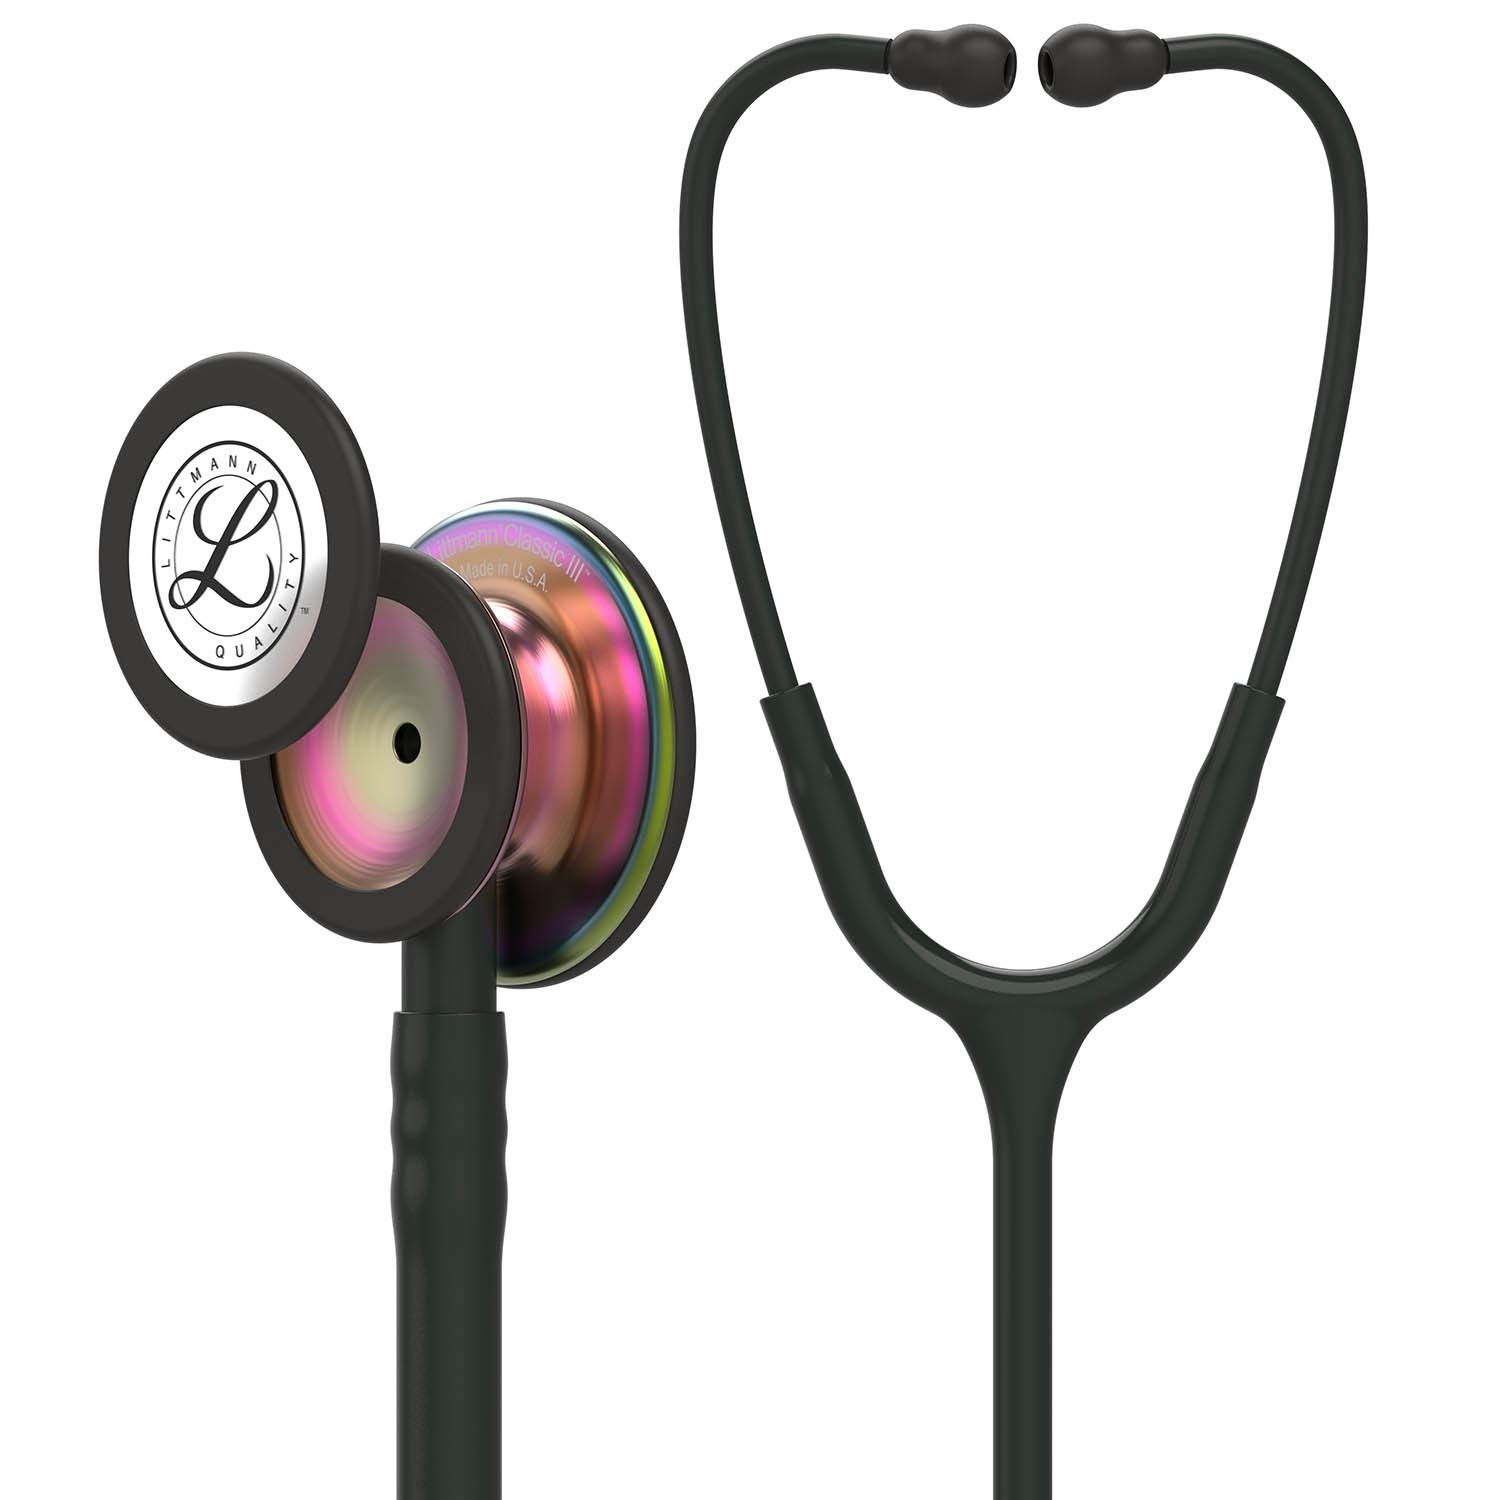 Monitoring Stethoscope